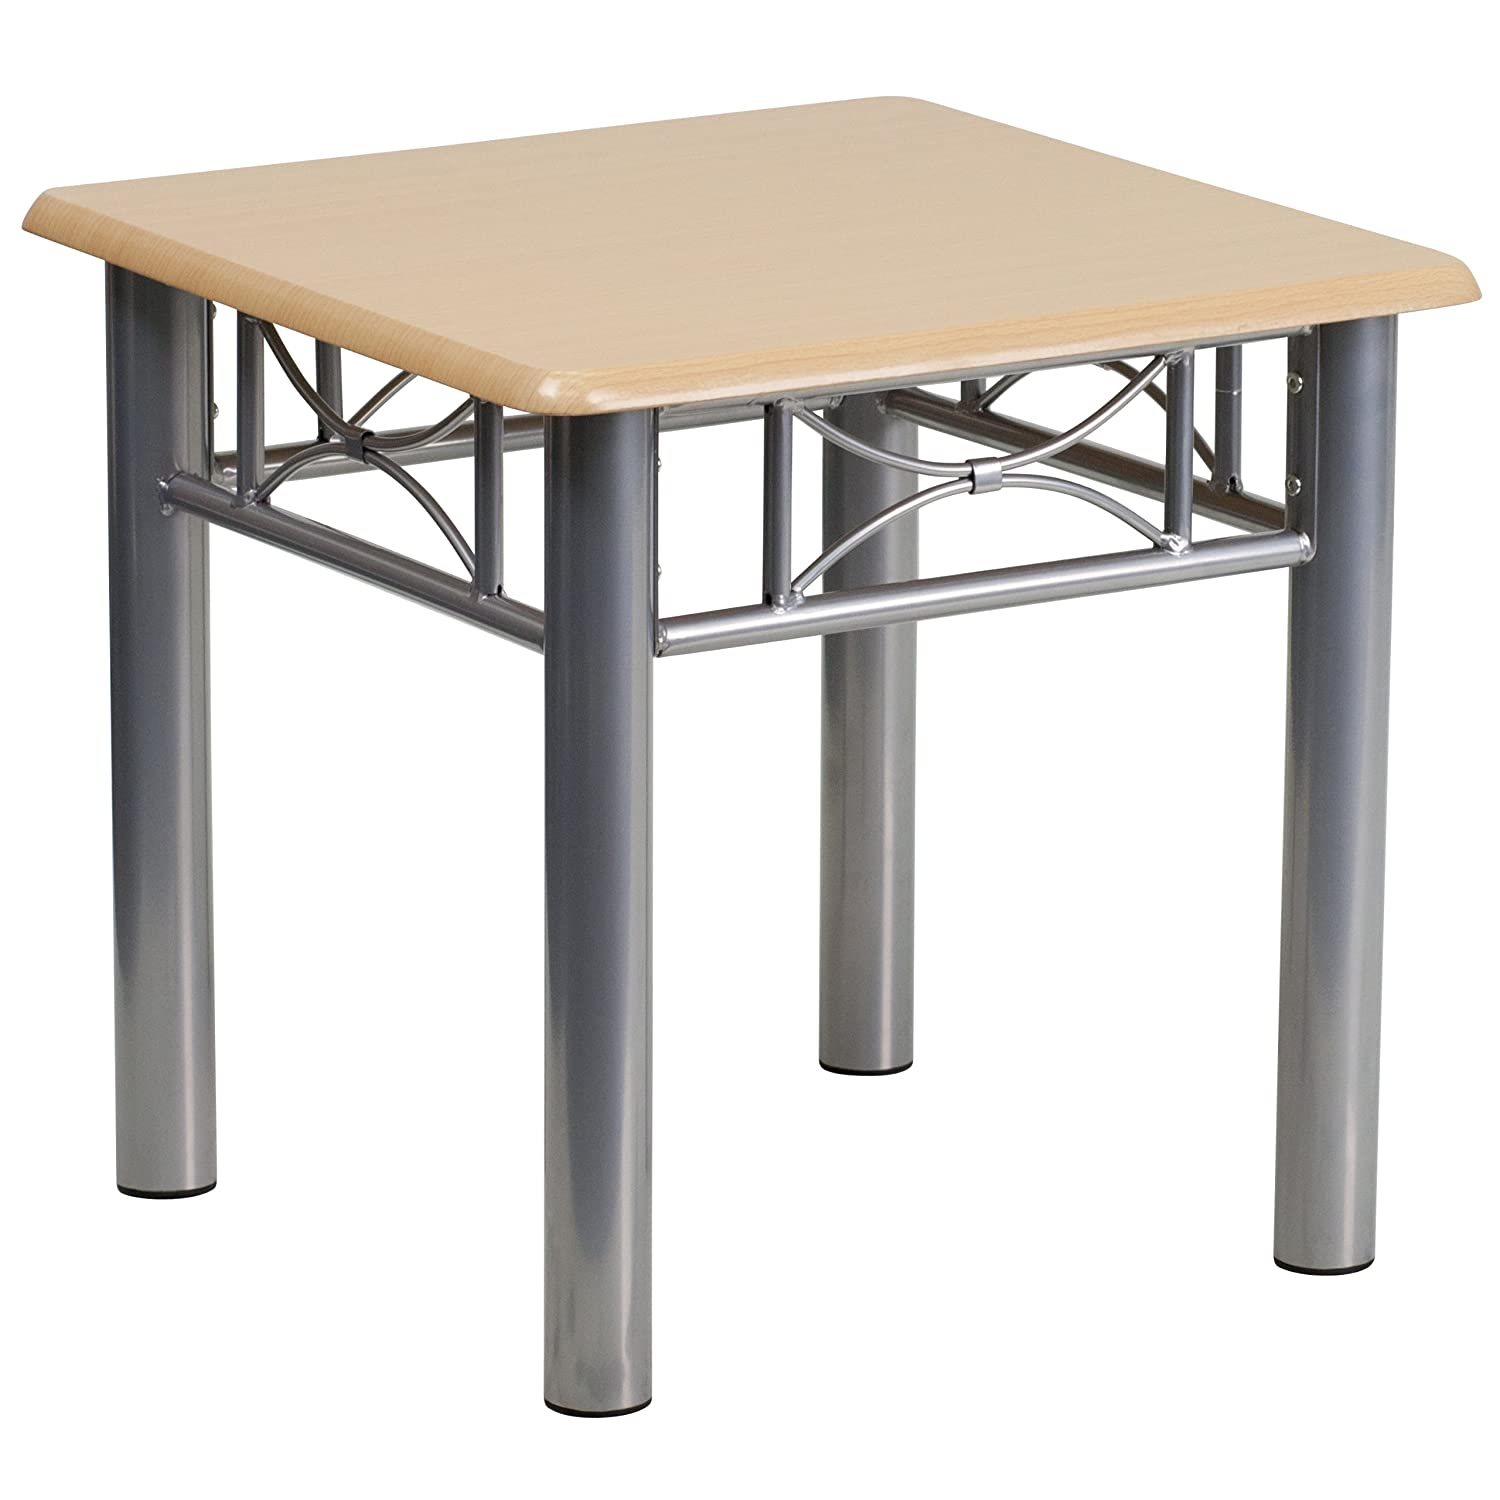 Amazon com flash furniture natural laminate end table with silver steel frame kitchen dining